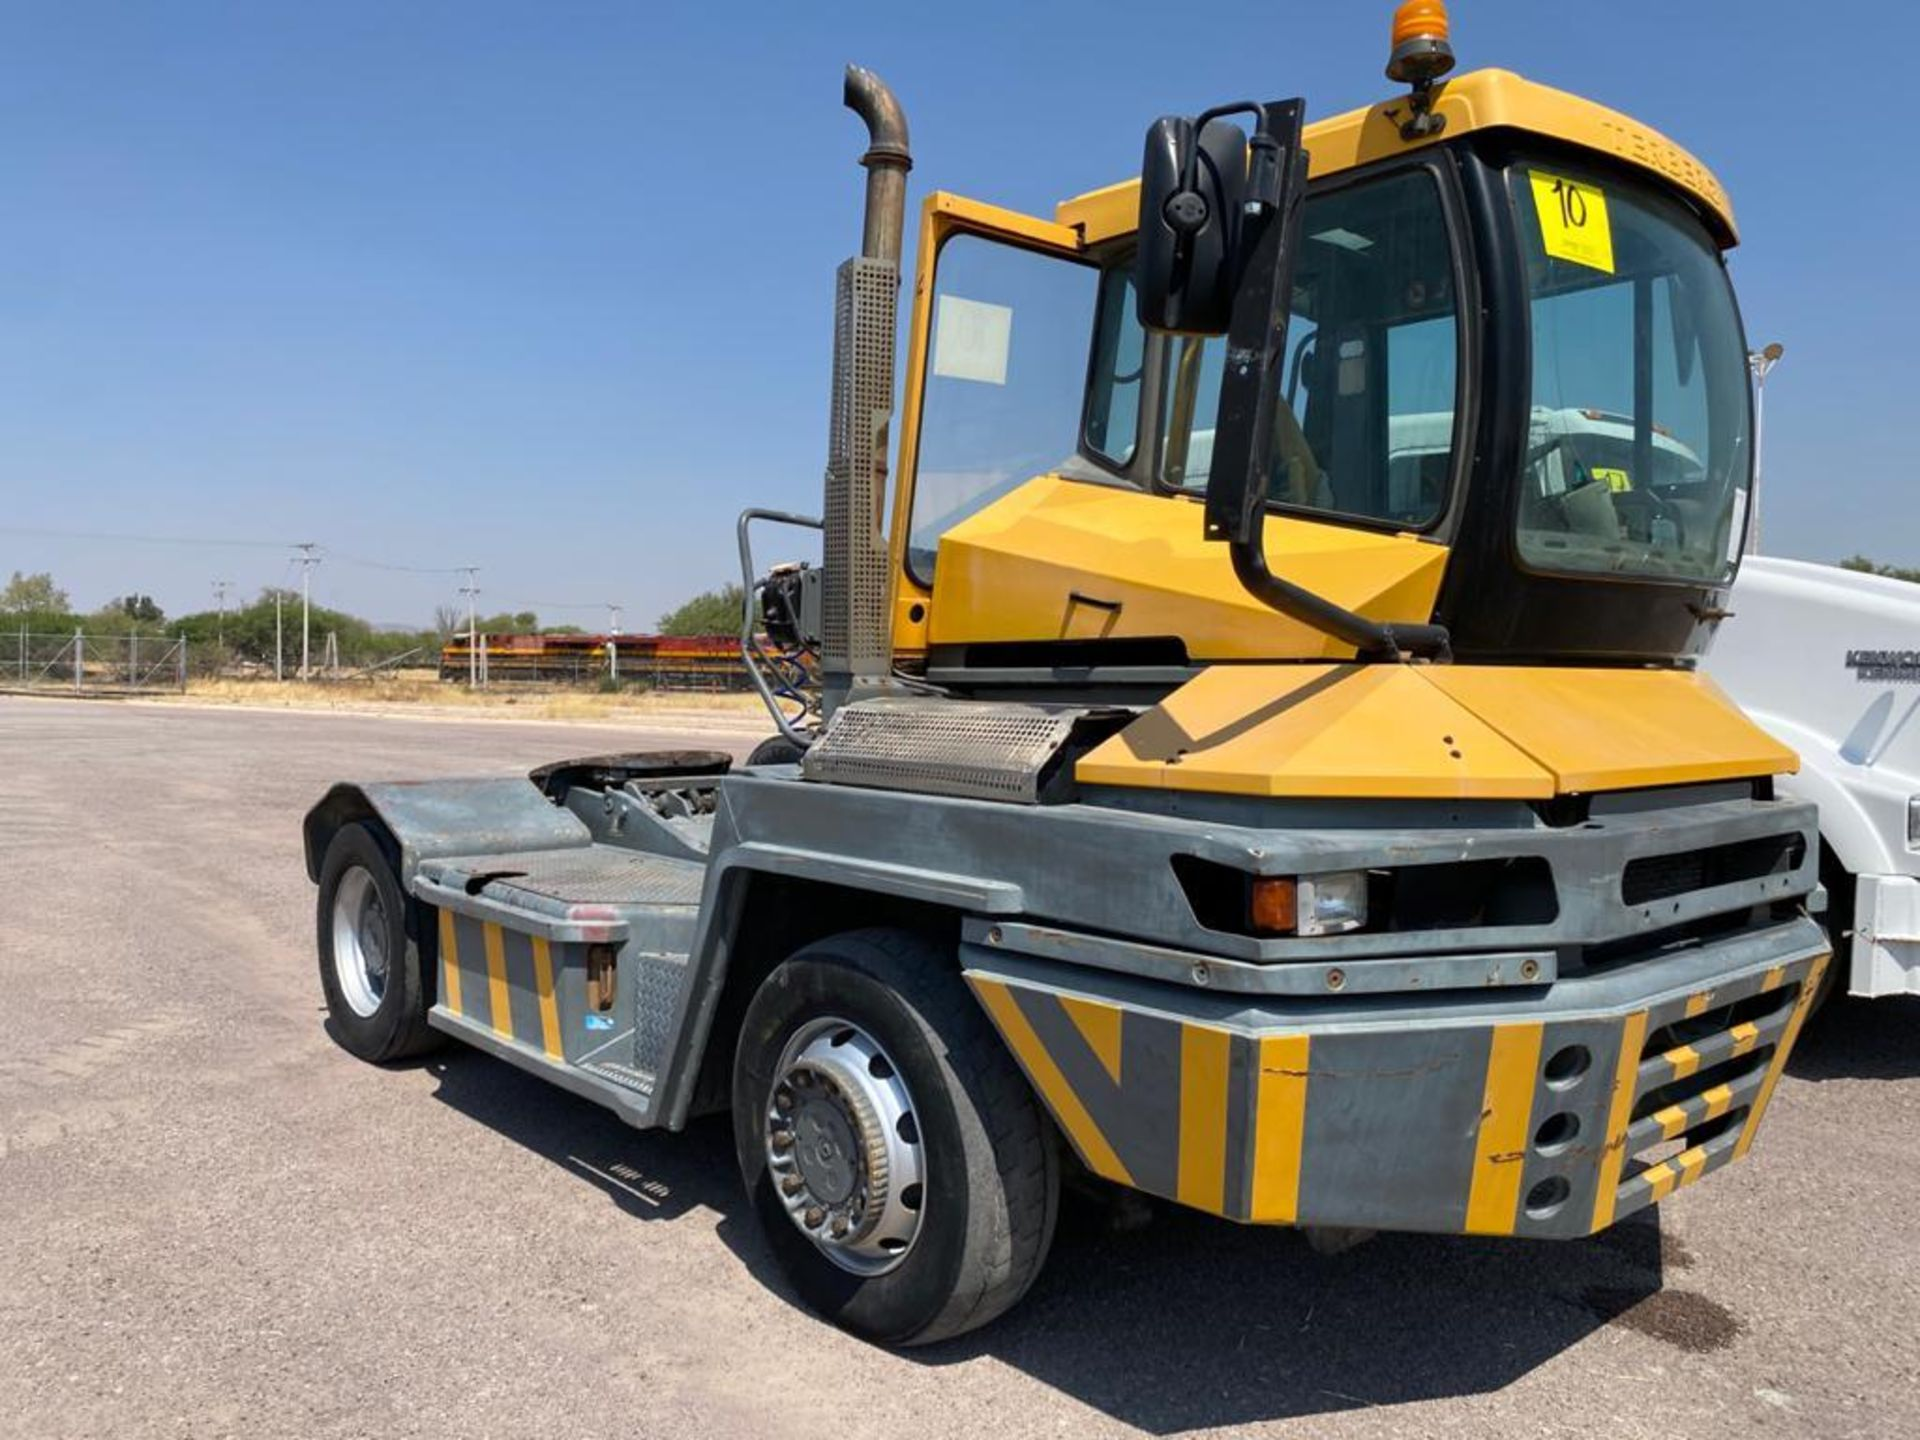 Terberg Capacity 2002 Terminal Tractor, automatic transmissio - Image 2 of 28